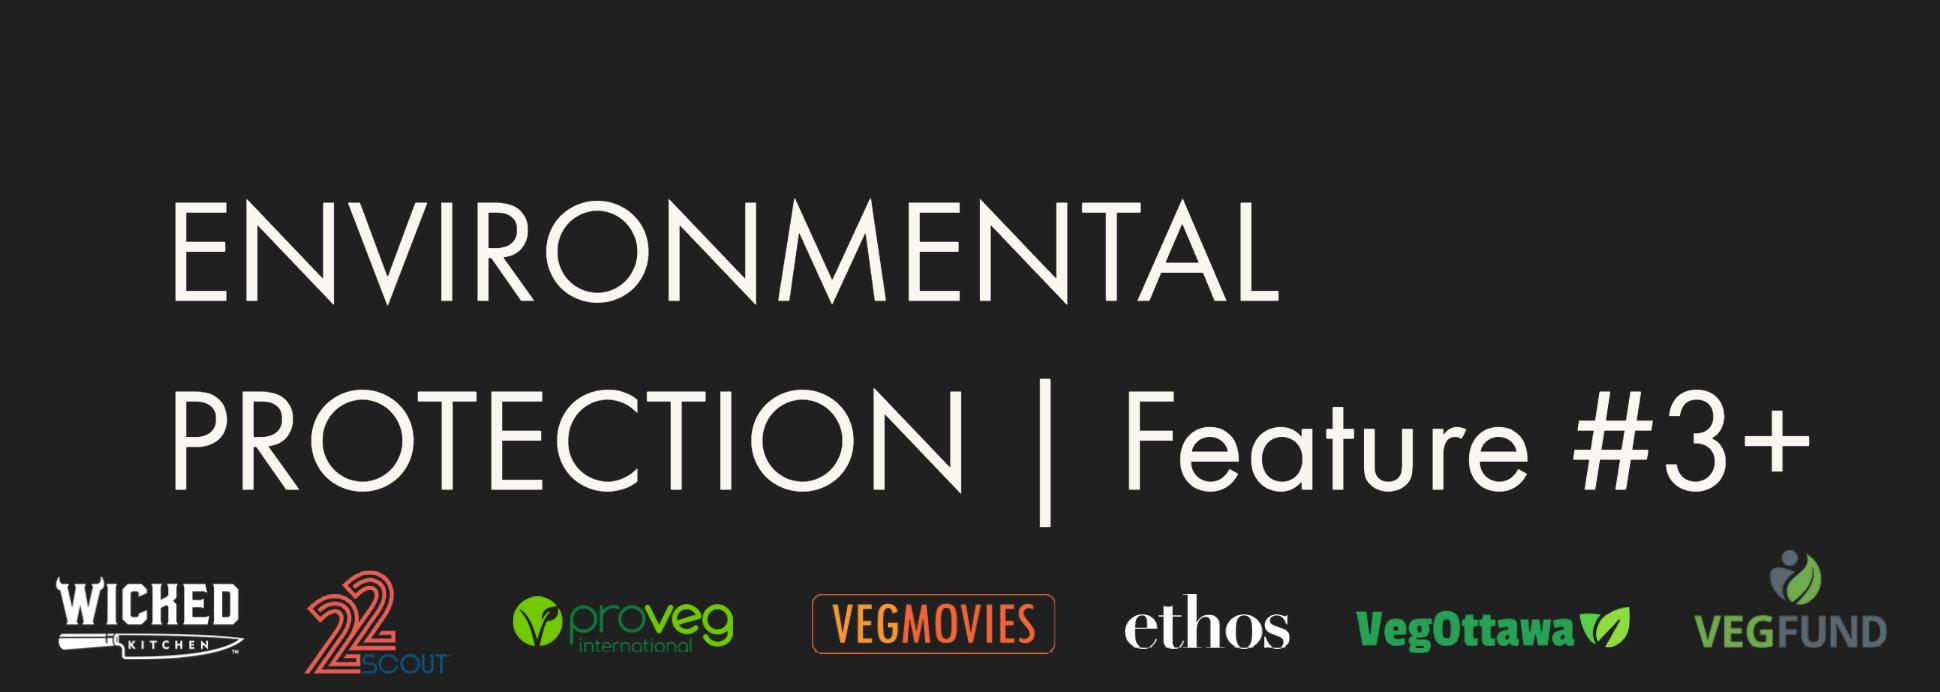 ENVIRONMENTAL PROTECTION feature #3+